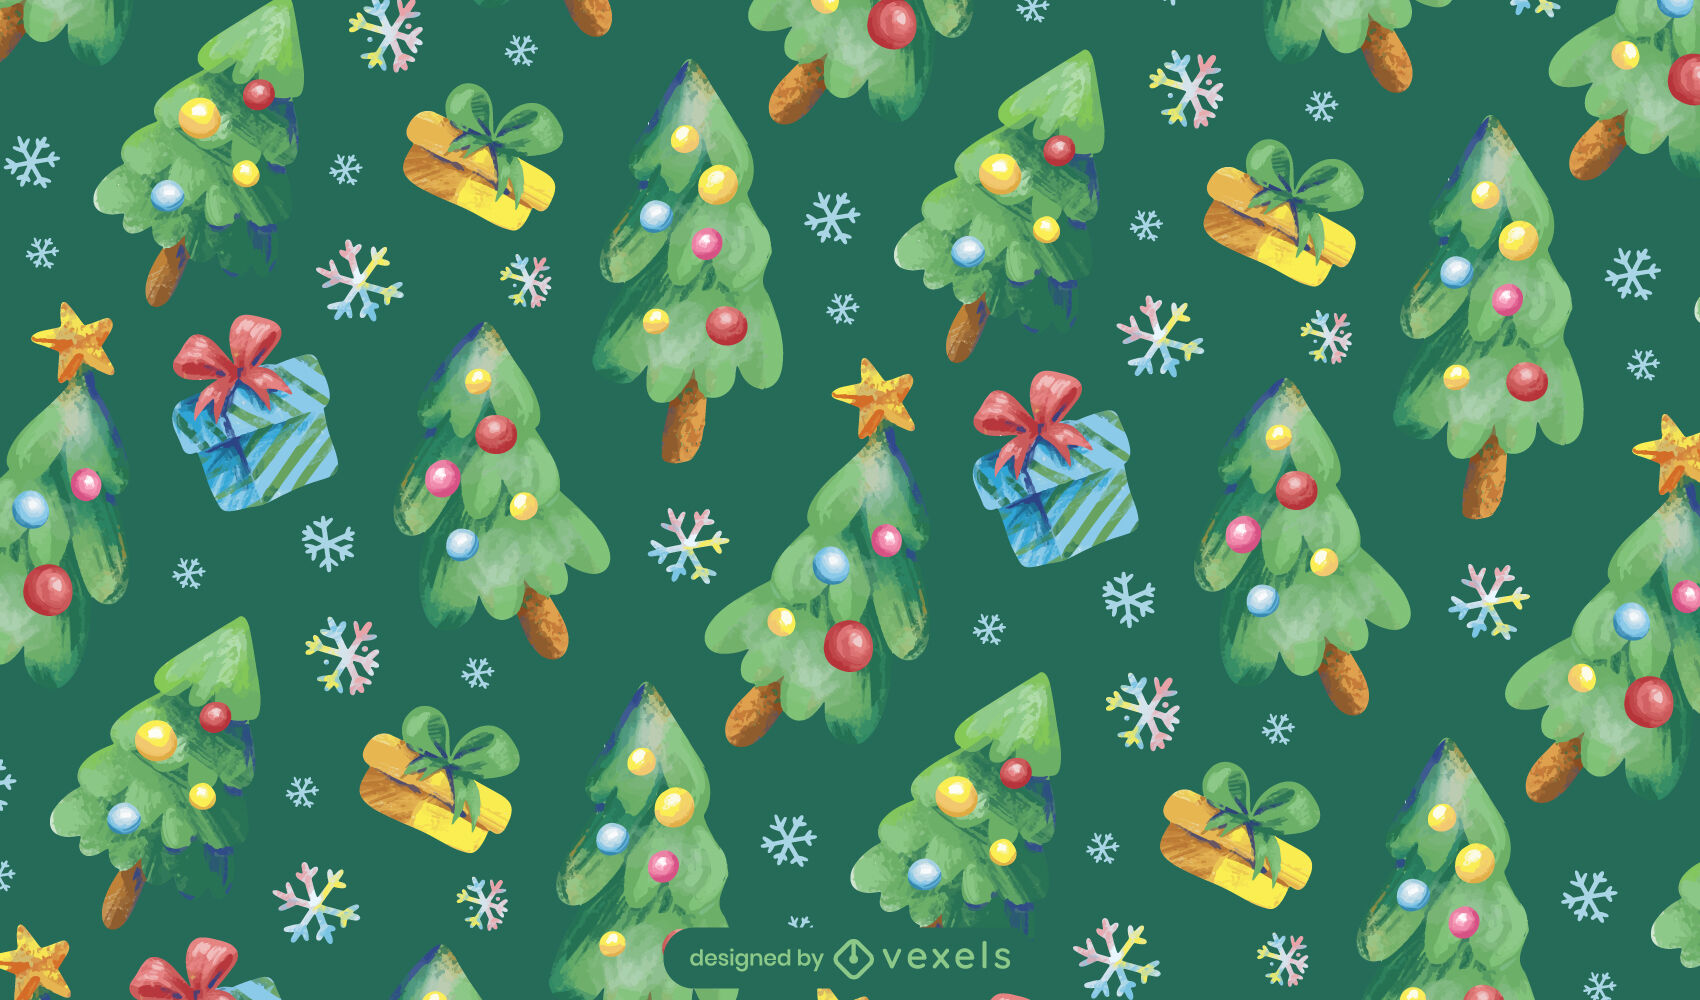 Christmas tree and presents pattern design